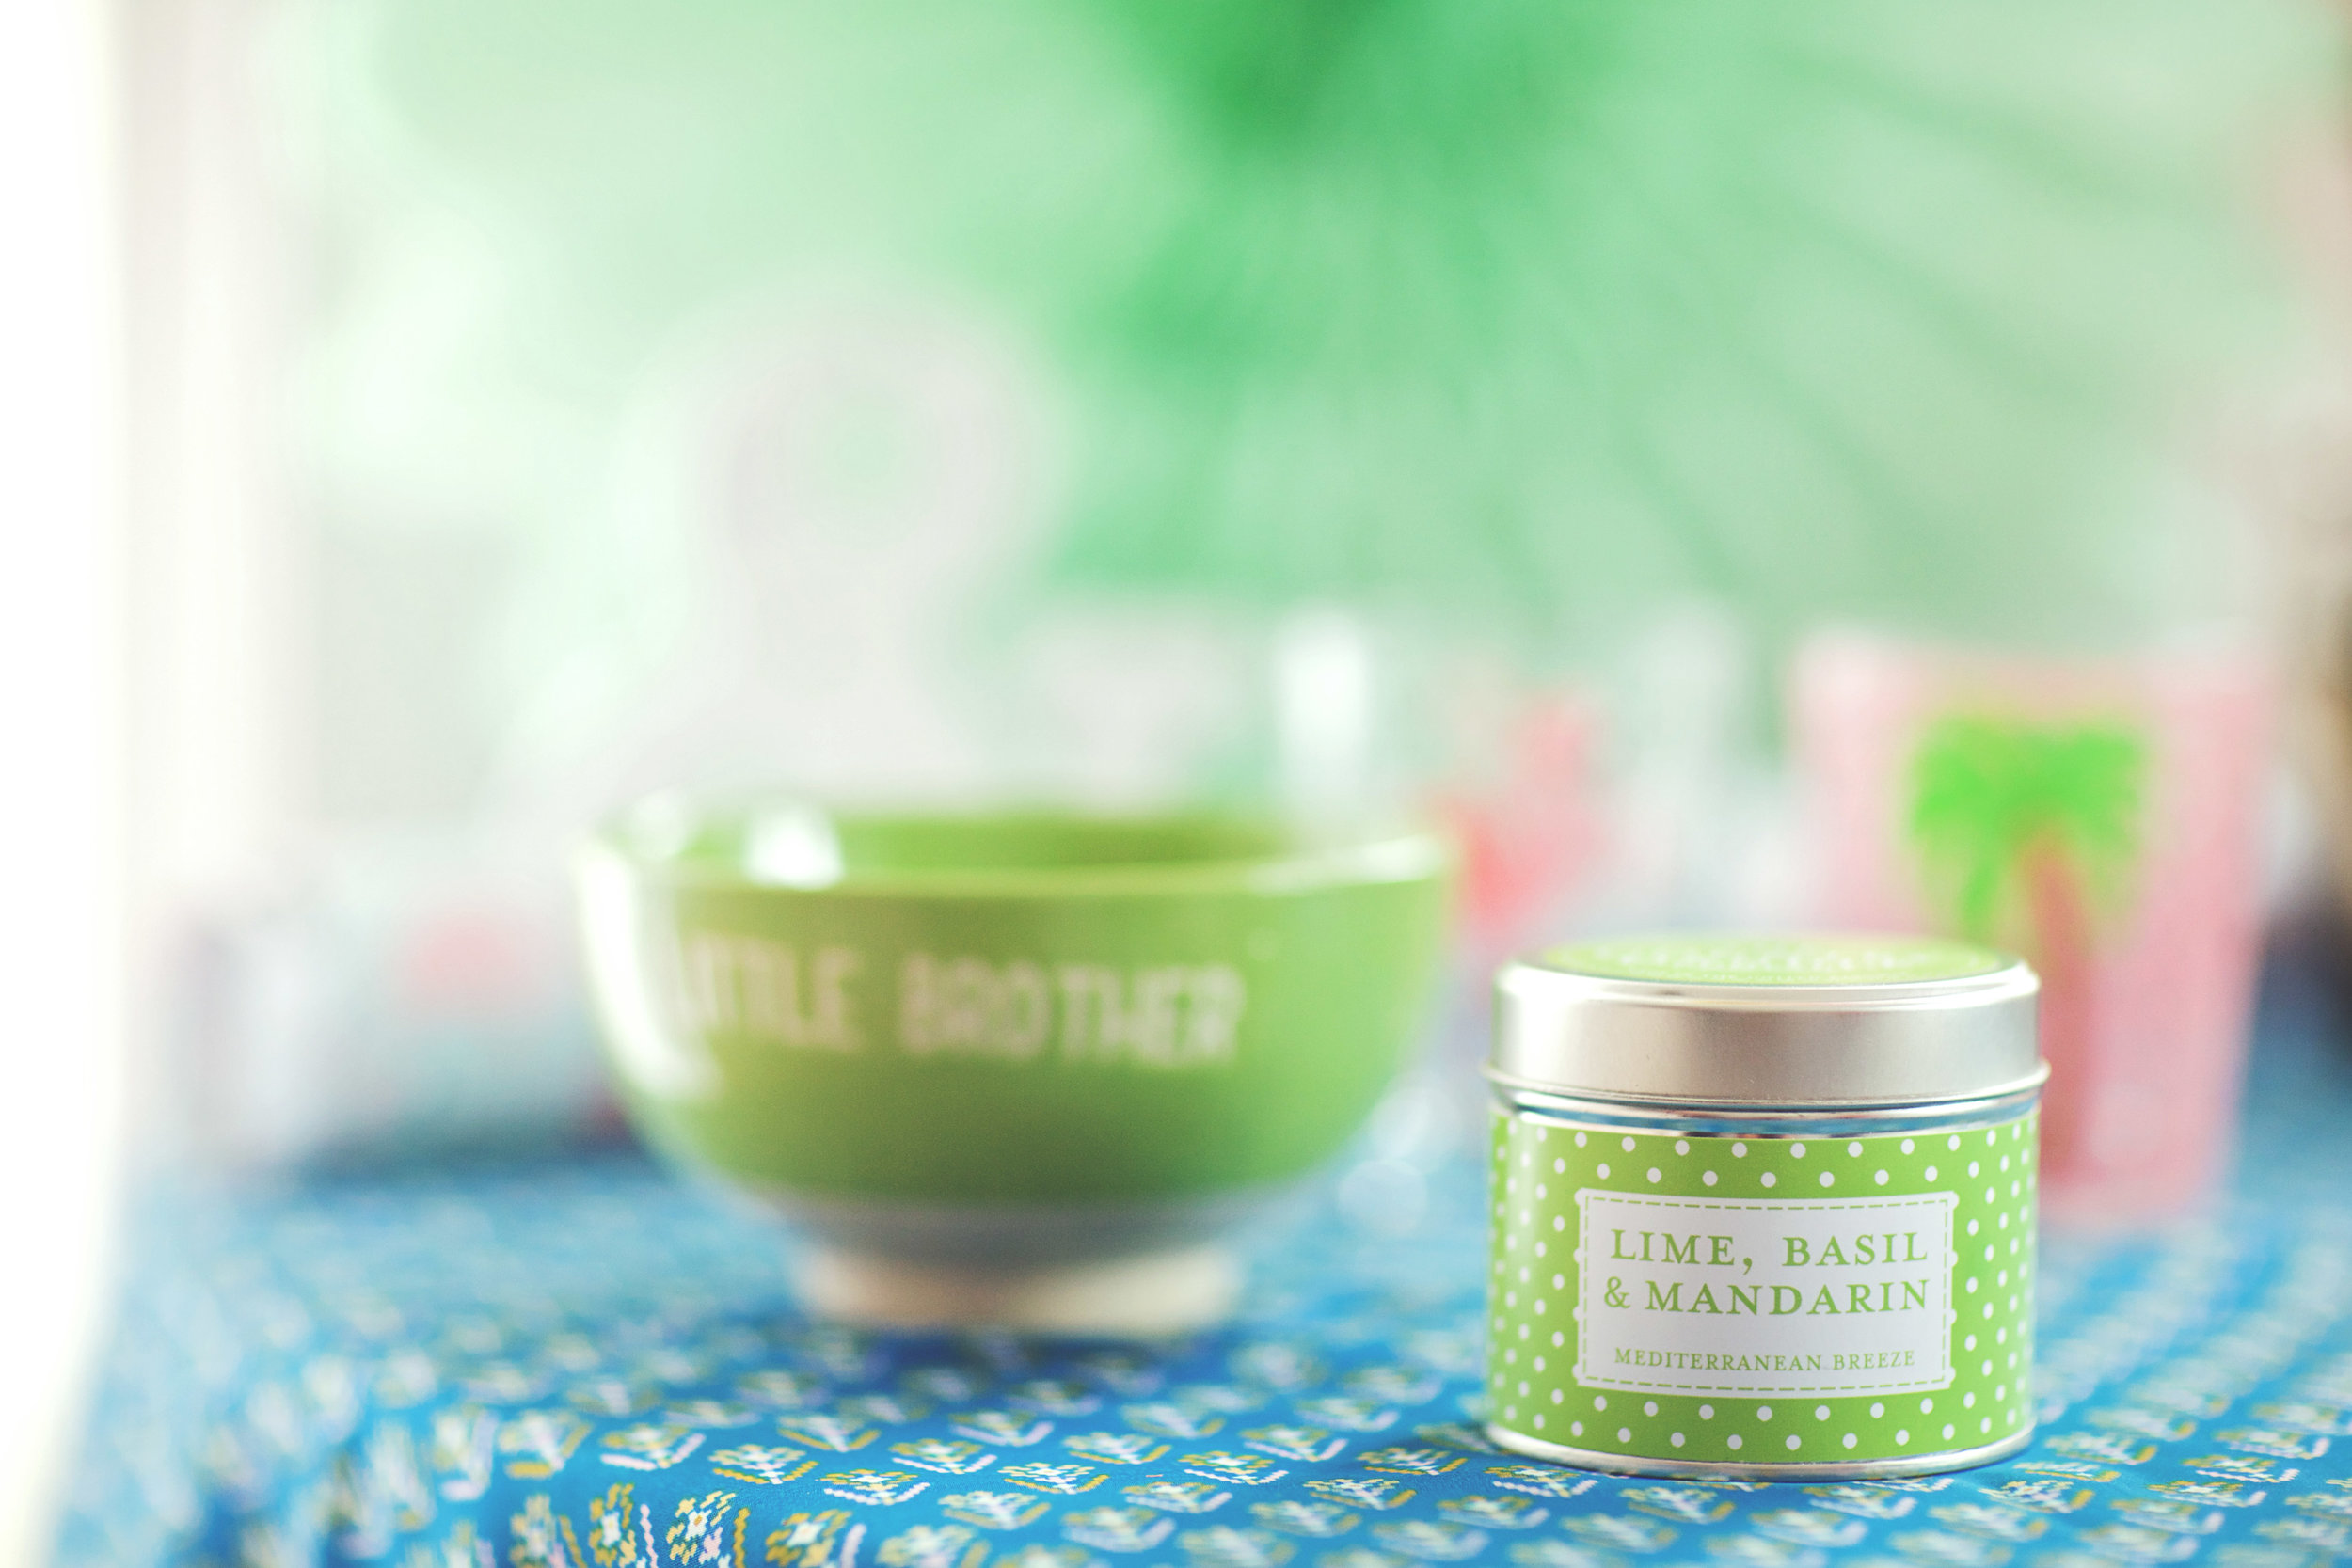 Lime, Basil & Mandarin Country Candle: £8.99